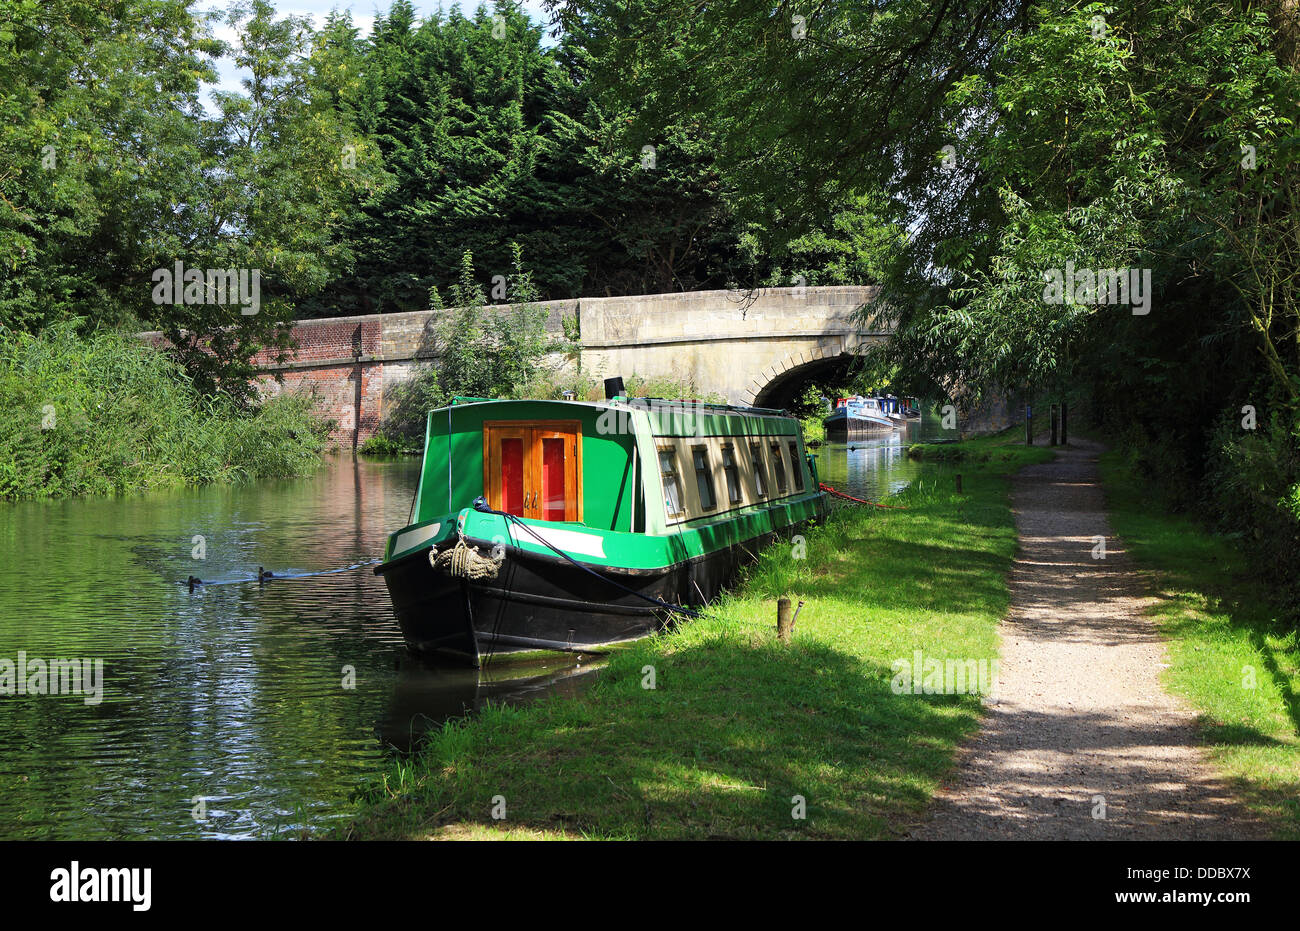 Narrowboats moored on the Kennet and Avon Canal in West Berkshire - Stock Image